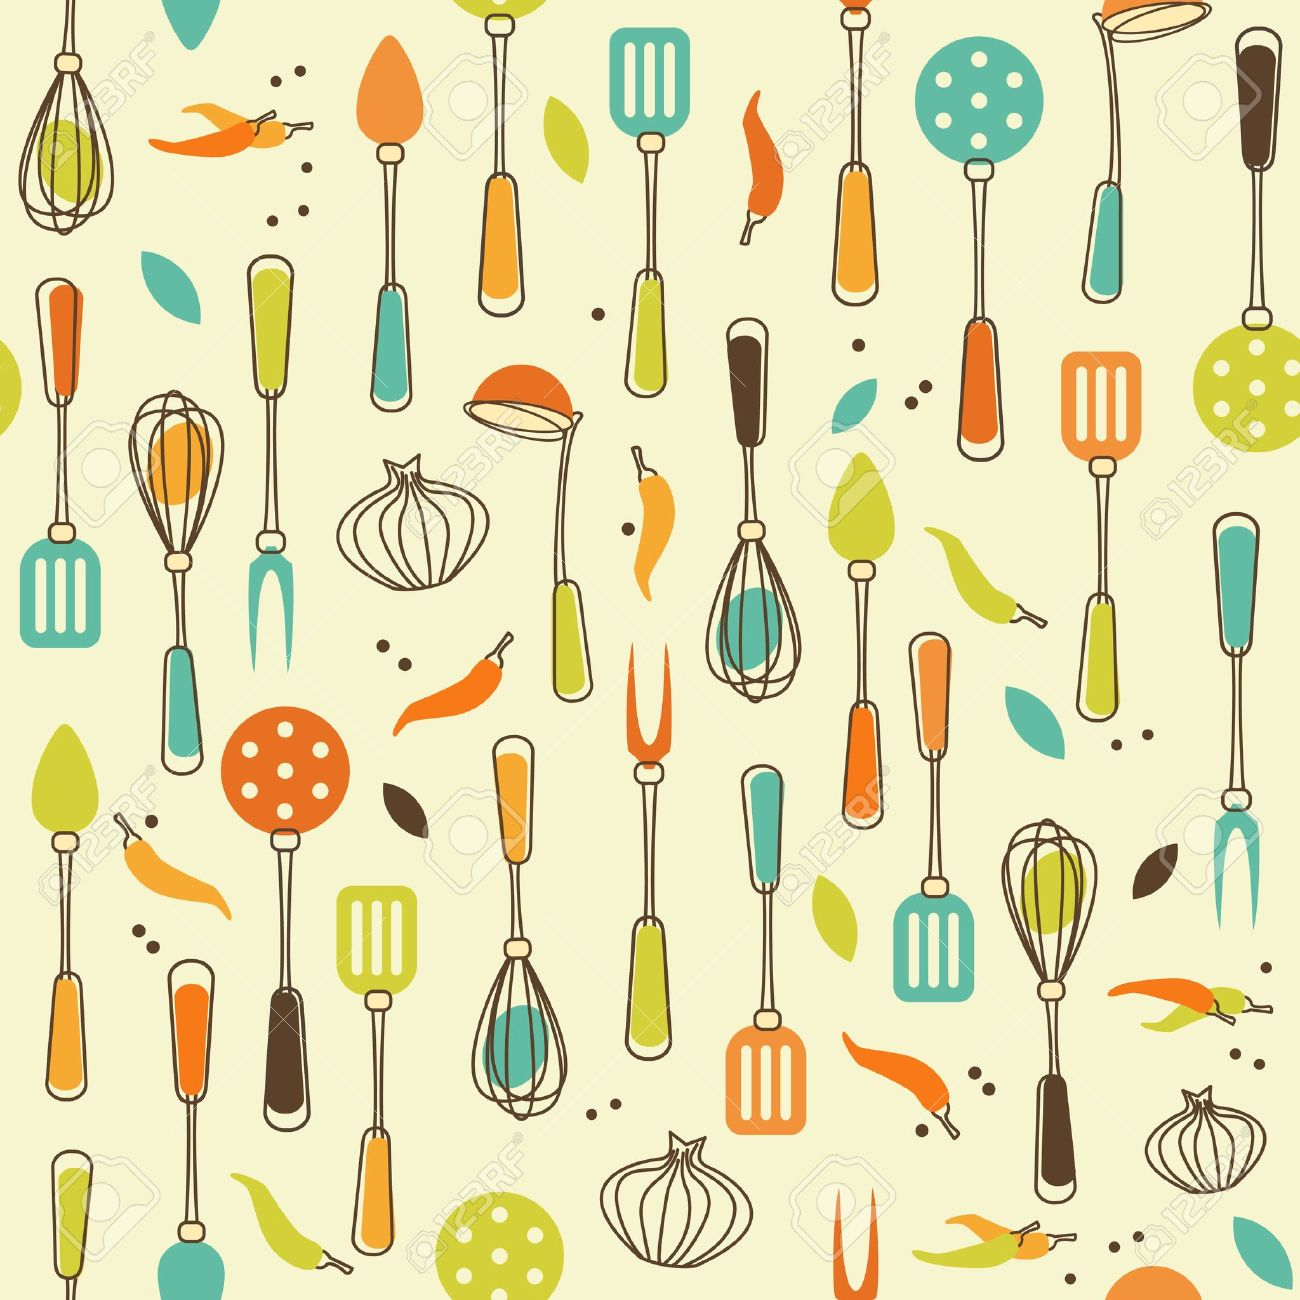 Seamless Pattern Of Kitchen Utensil In Retro Styled Royalty Free